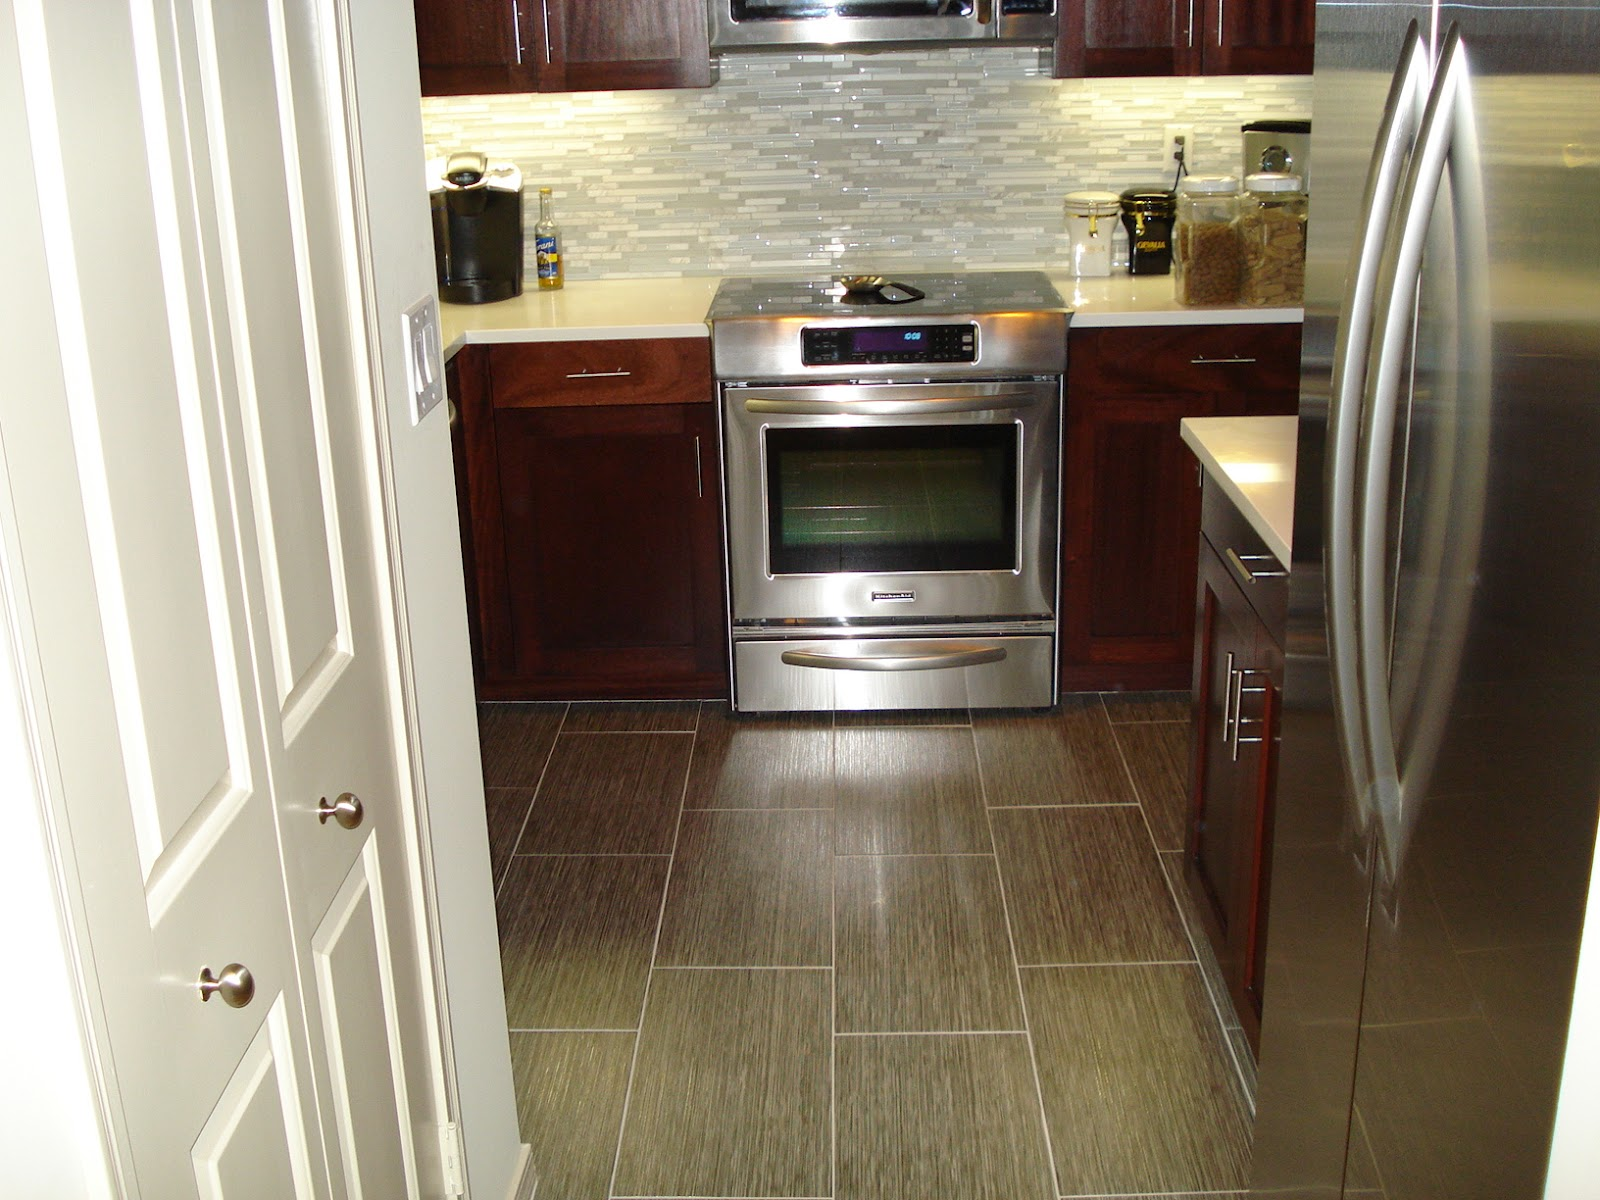 Replacing broken porcelain floor tile confessions of a tile setter this is a textured tile with a deep brown color and is cleverly accented in an oyster gray grout this contrast makes for a very attractive floor dailygadgetfo Choice Image